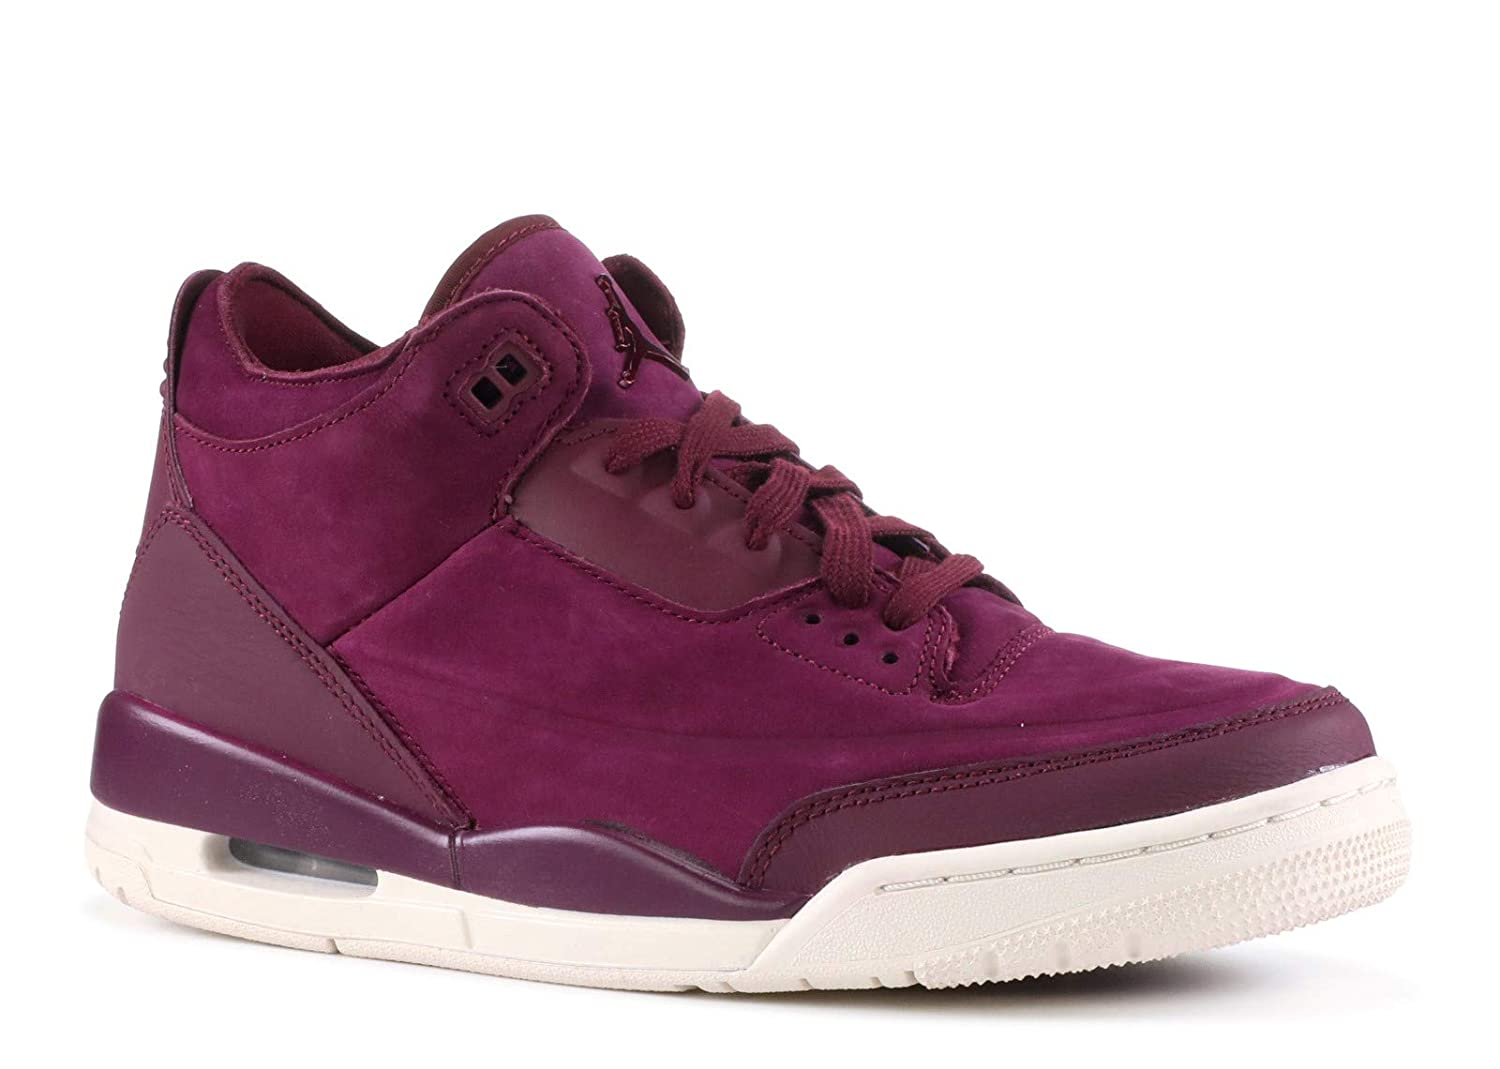 Image of AIR JORDAN 3 Retro Se 'Bordeaux' Womens -Ah7859-600 - Size Basketball